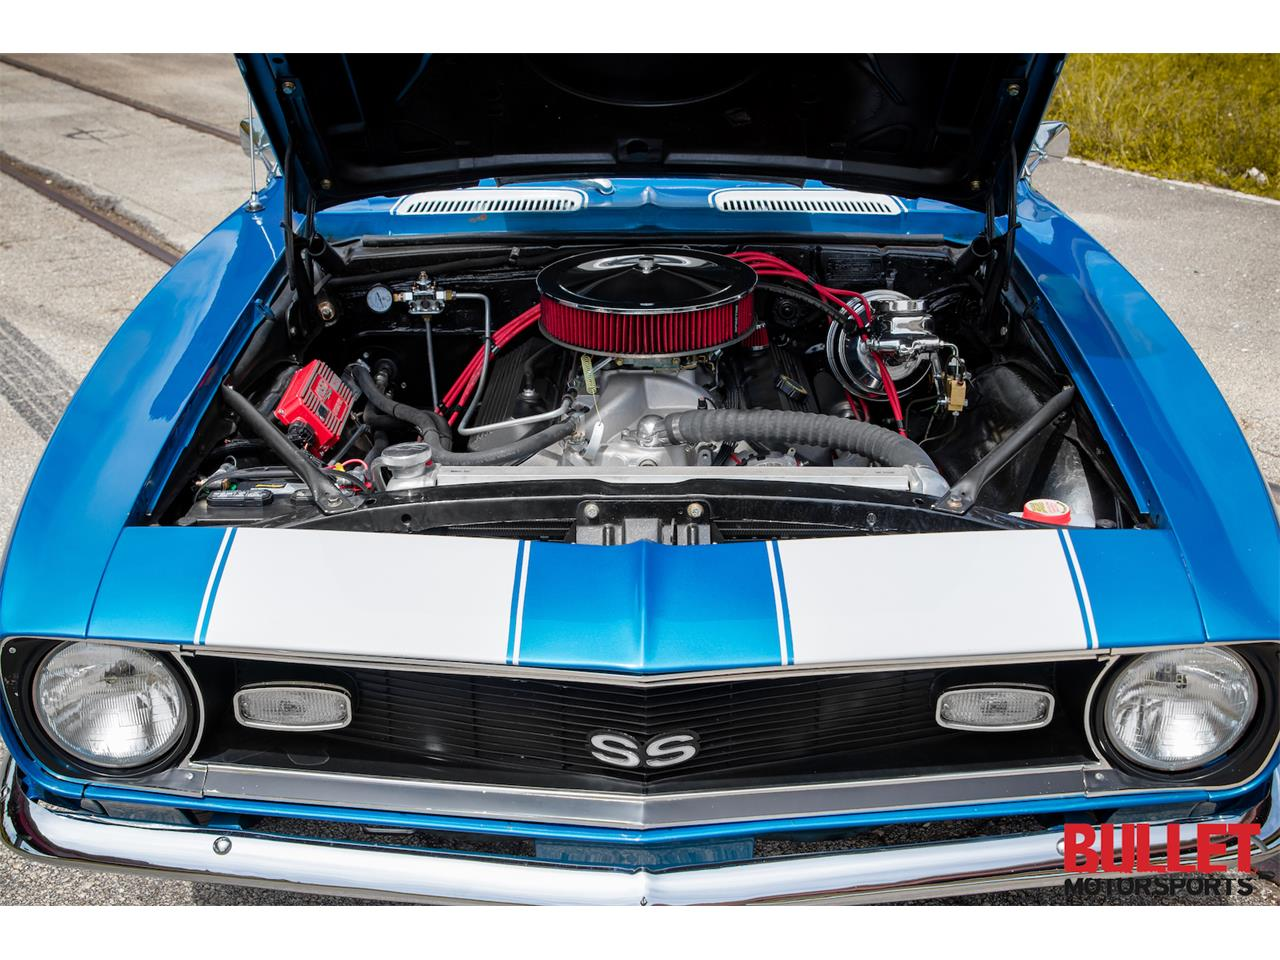 Large Picture of '68 Camaro - $40,000.00 Offered by Bullet Motorsports Inc - O7VM